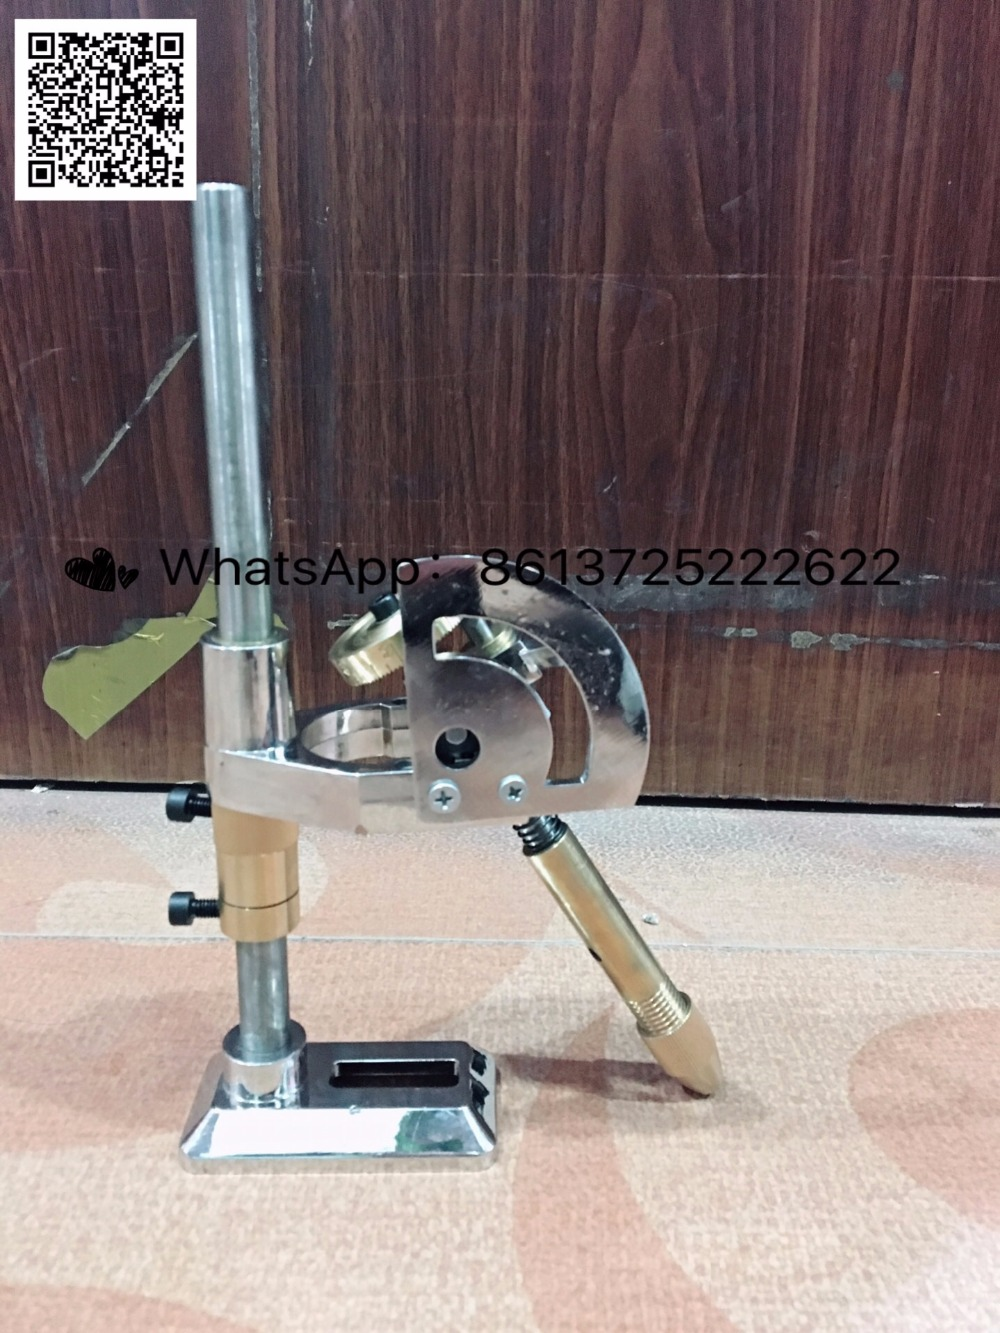 gem Faceting Machine Grinding Faceted manipulator jewels playing angle flat mill polishing stone angles 96 index wheels handle